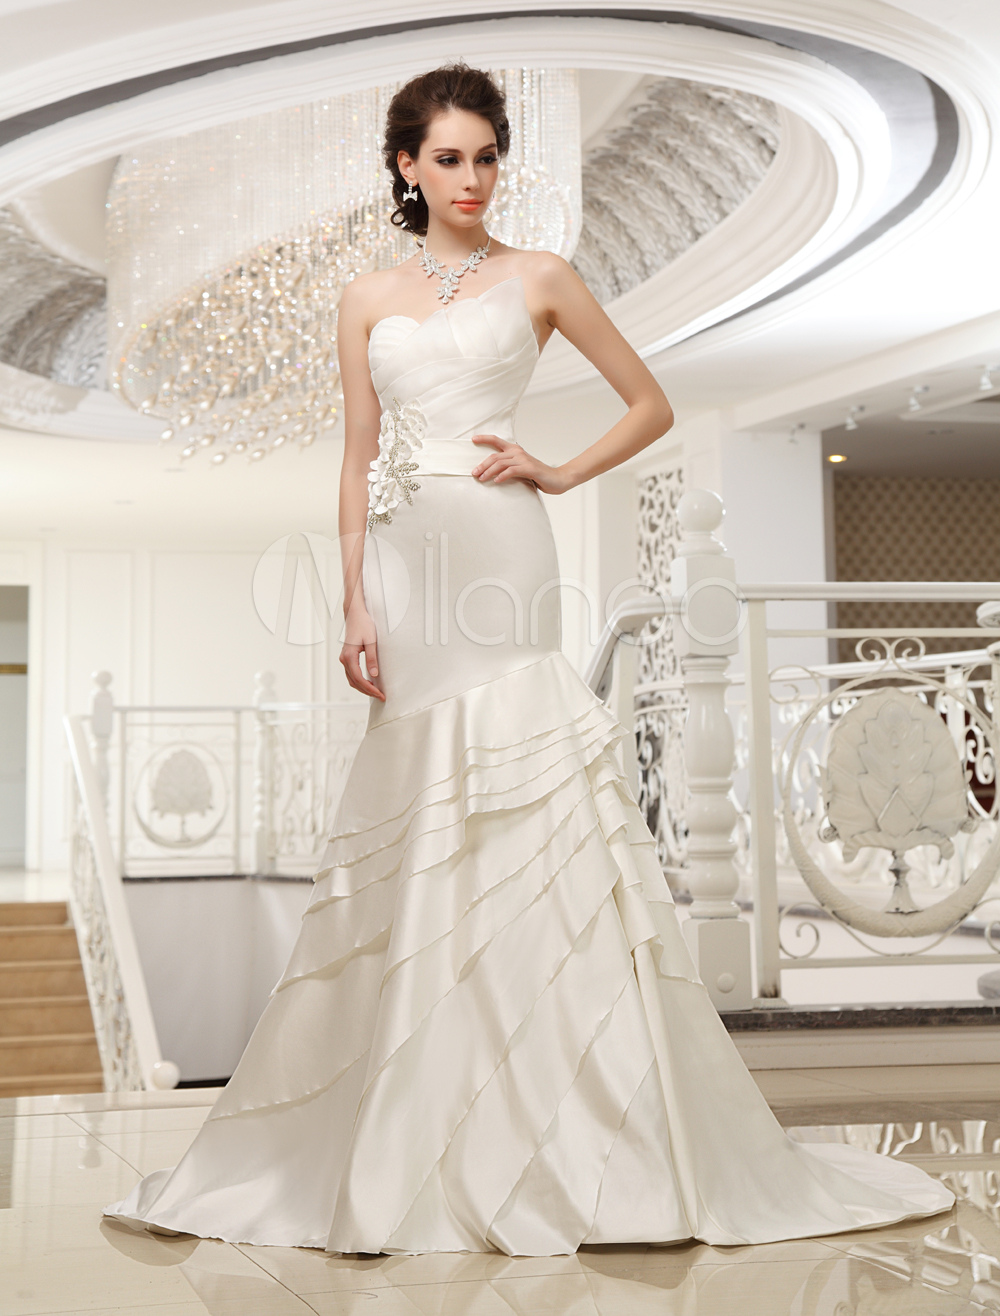 Buy Court Train Ivory Strapless Mermaid Strapless Wedding Dress For Bride with Tiered Milanoo for $199.99 in Milanoo store